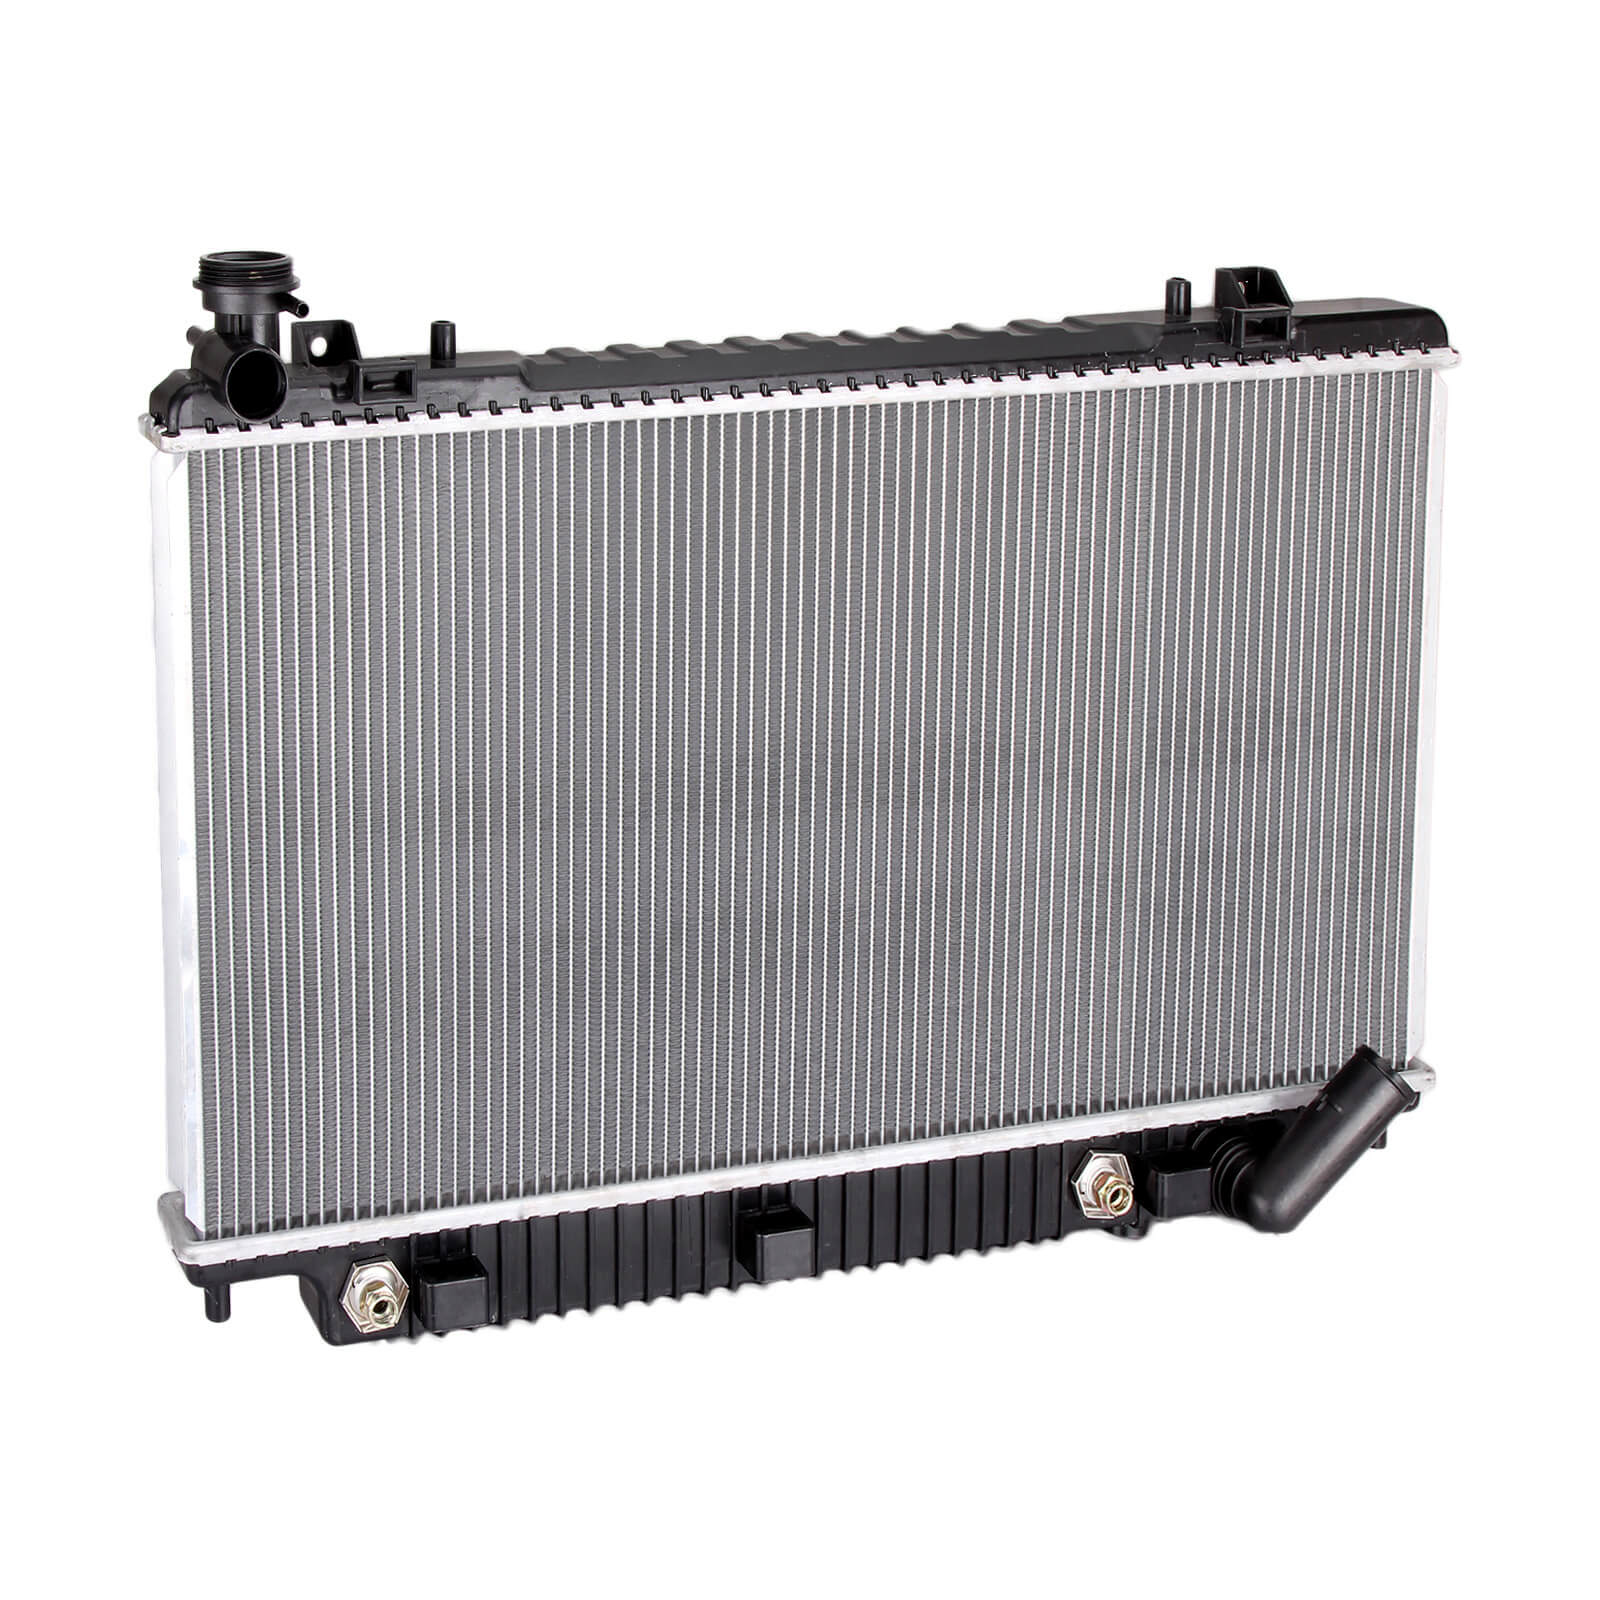 Radiator Holden Commodore VE Series V8 Engine 2006-2013 Auto/Man Premium Quality